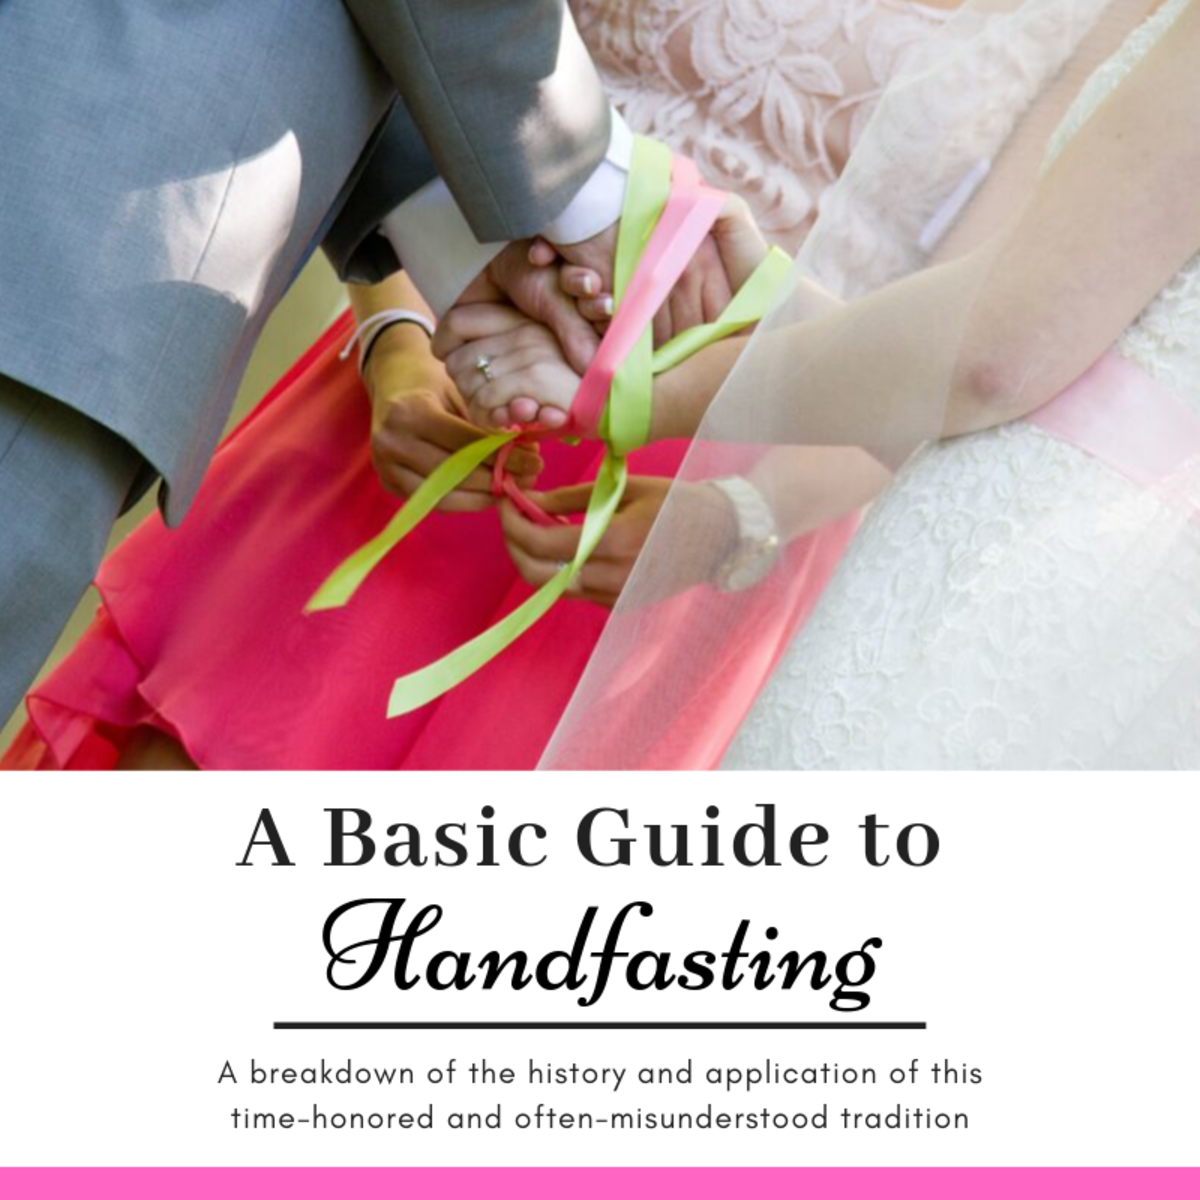 This article will breakdown the history and practice of handfasting.